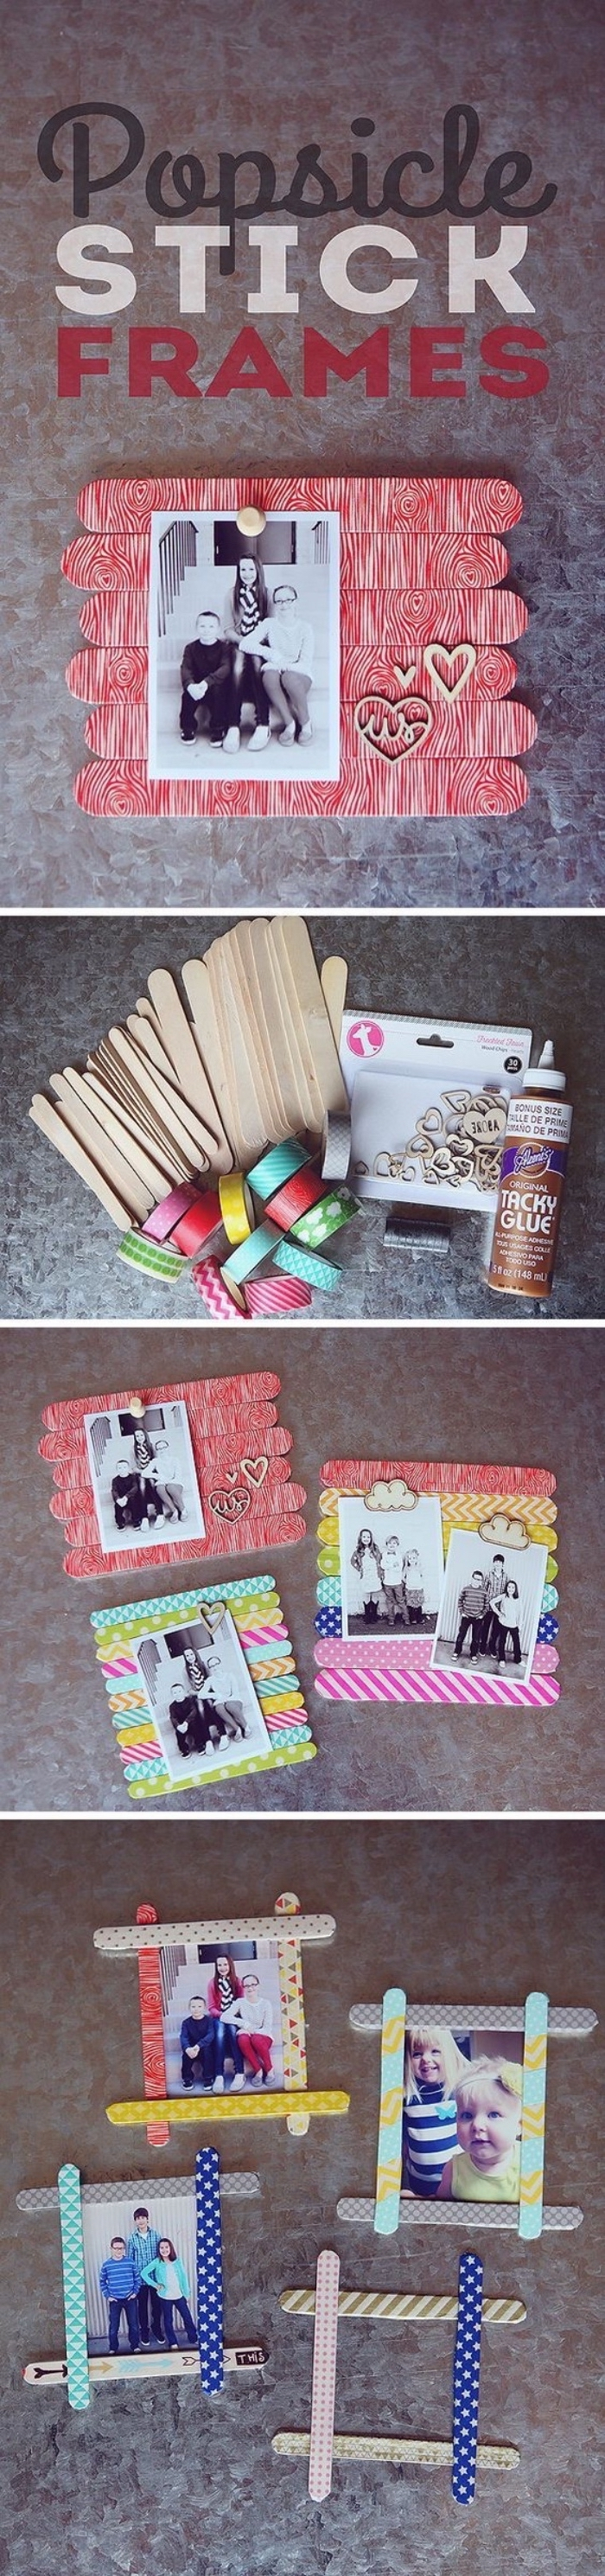 popsicle stick frames, different photos, language activities for preschoolers, colourful wooden sticks